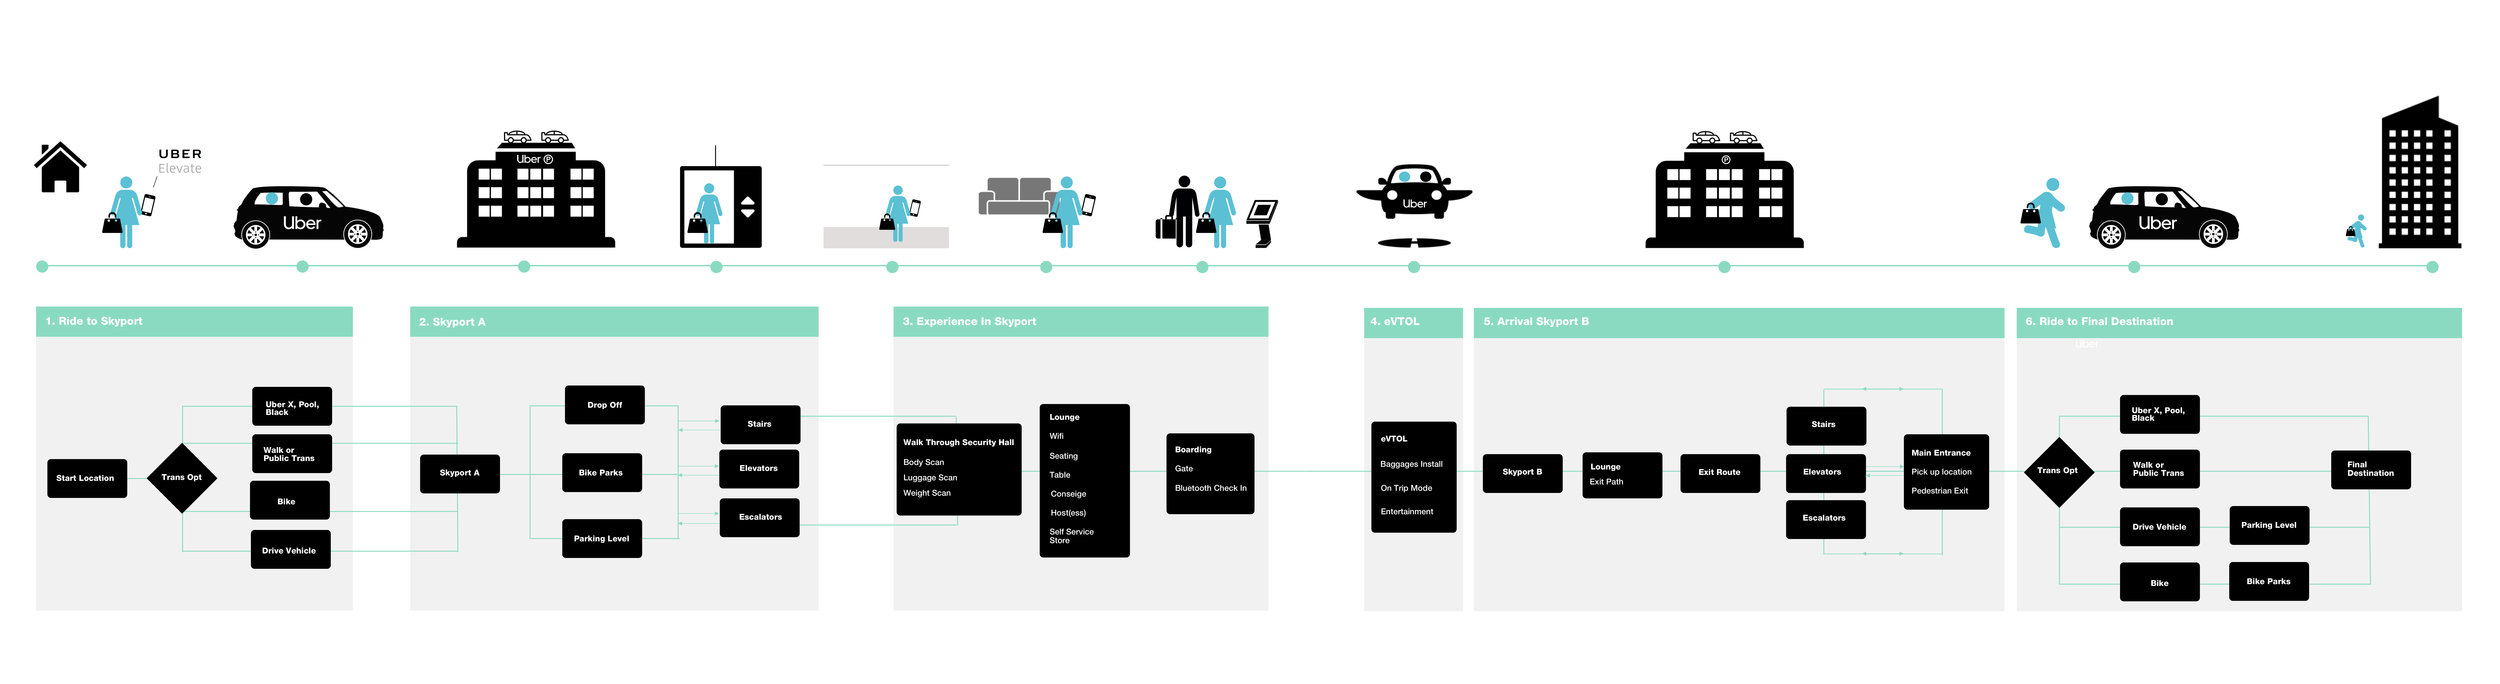 User Journey Visual Copy.jpg